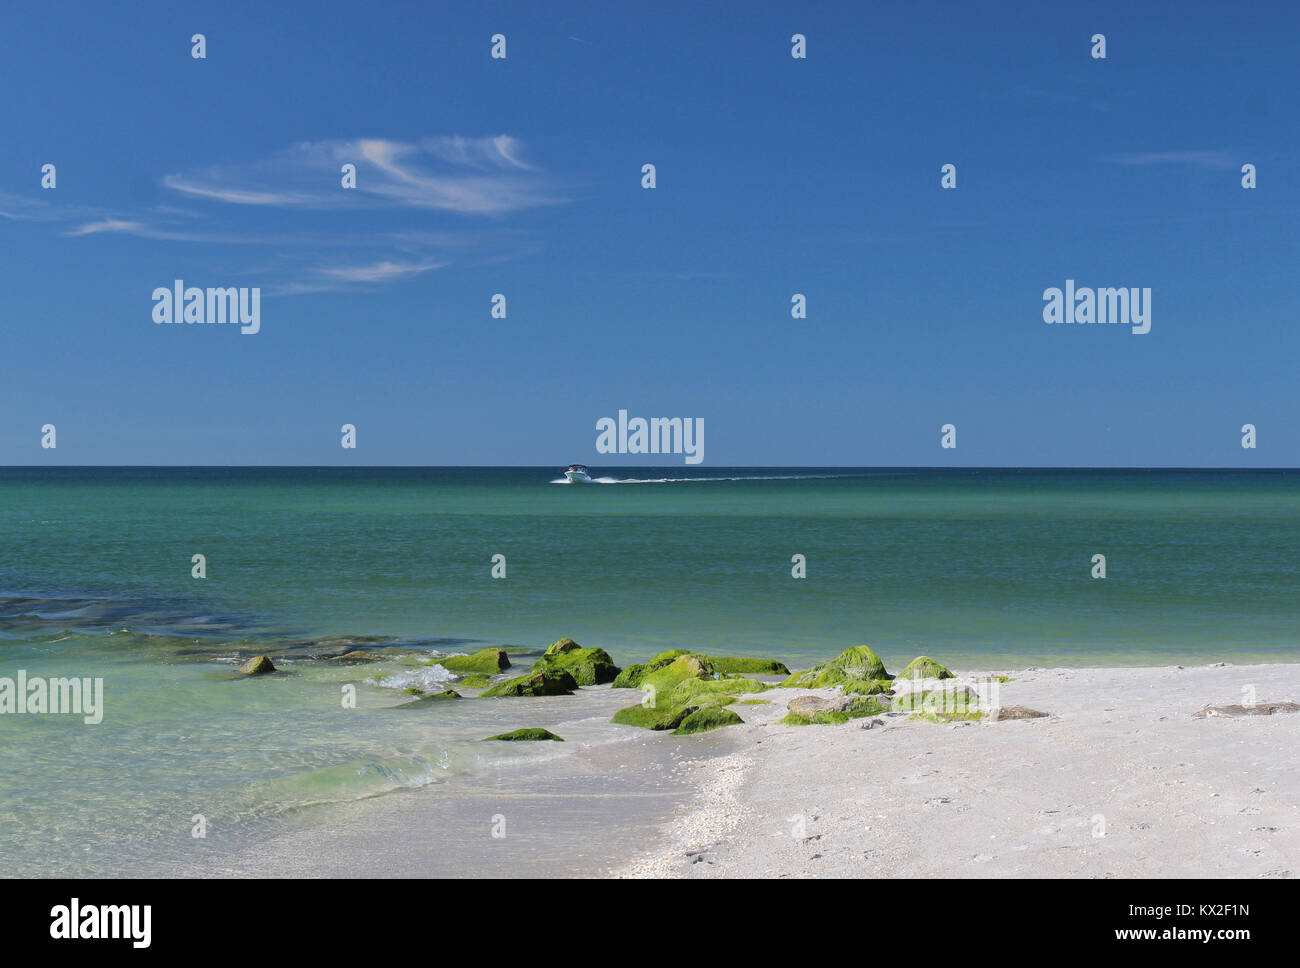 Landscape of a rocky and sandy beach with boat cruising past at Stump Pass Beach State Park Florida - Stock Image